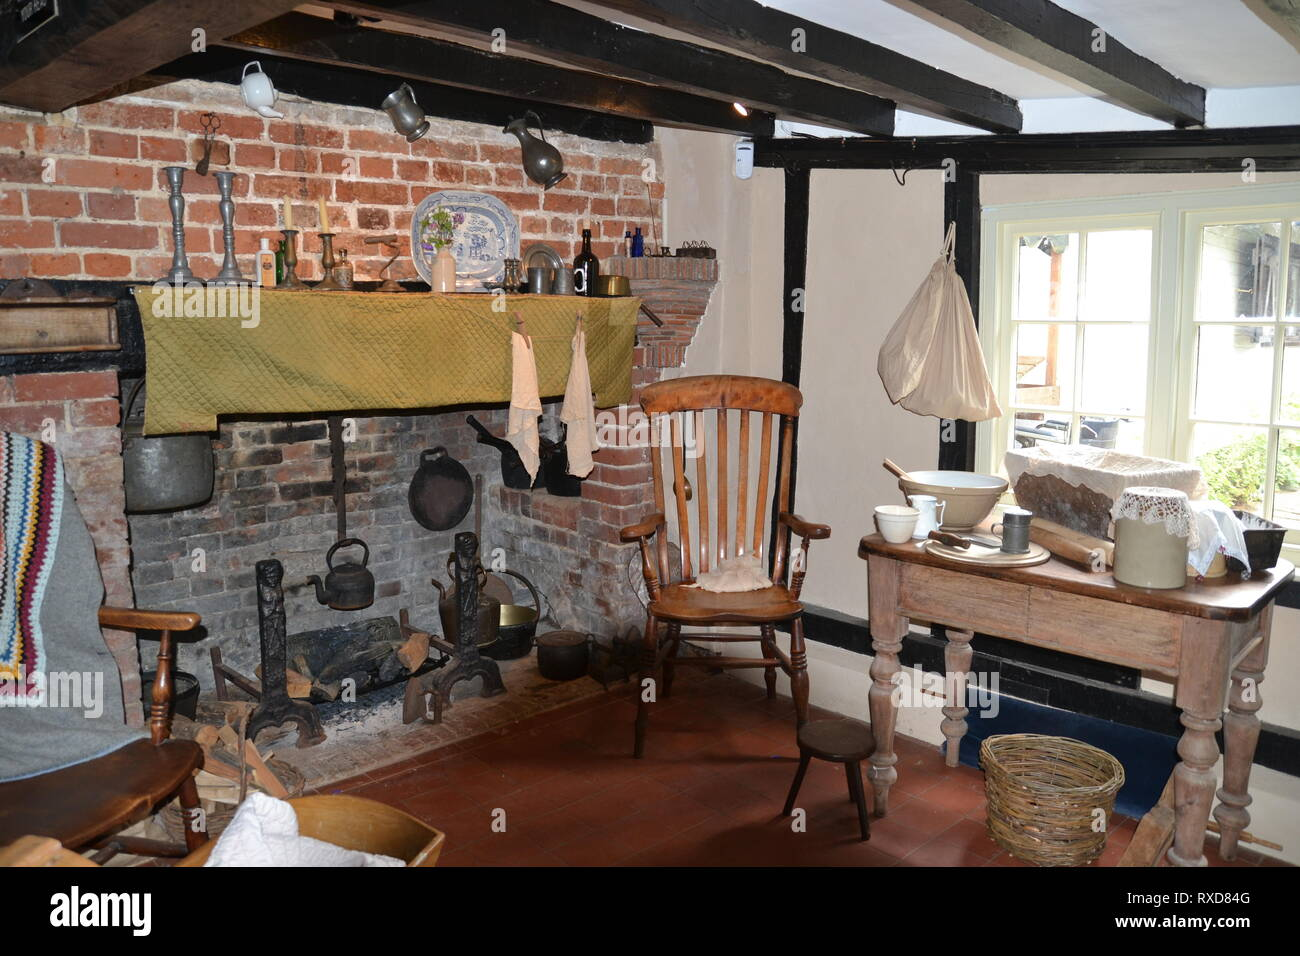 Inside Flatford Bridge Cottage at Flatford, Suffolk, UK - tenant farmer - Stock Image